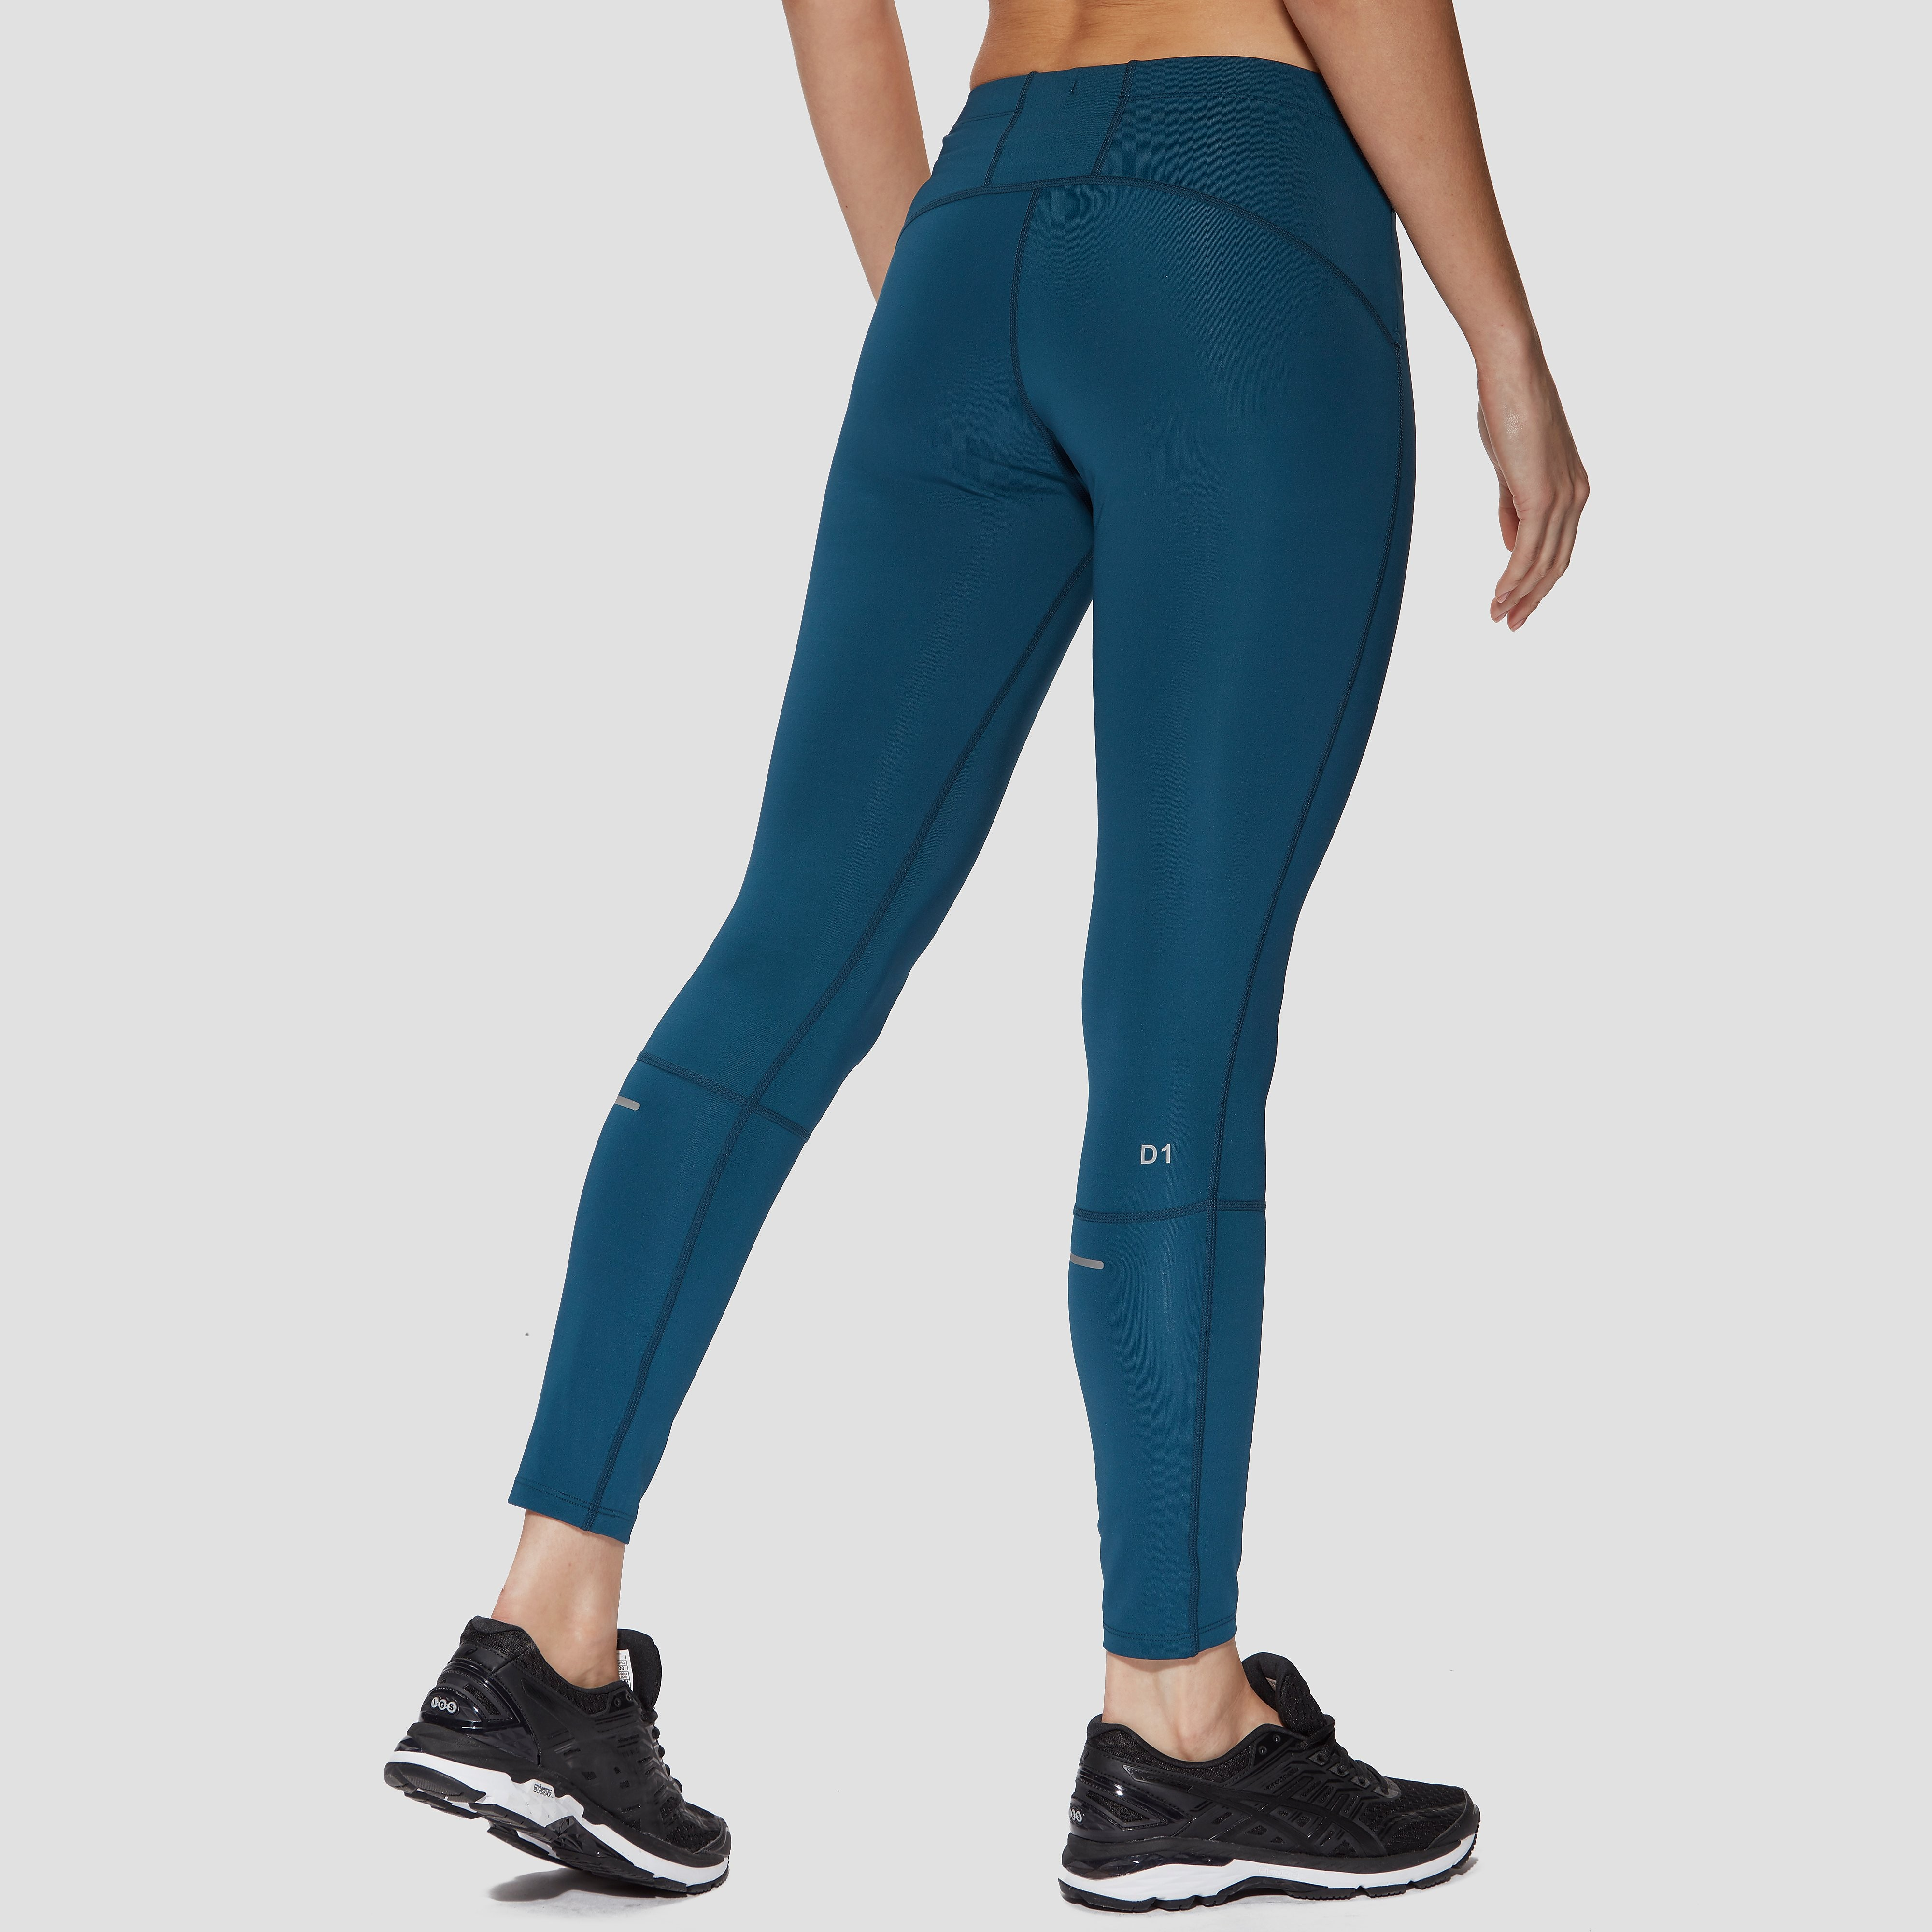 ASICS 7/8 Women's Tights